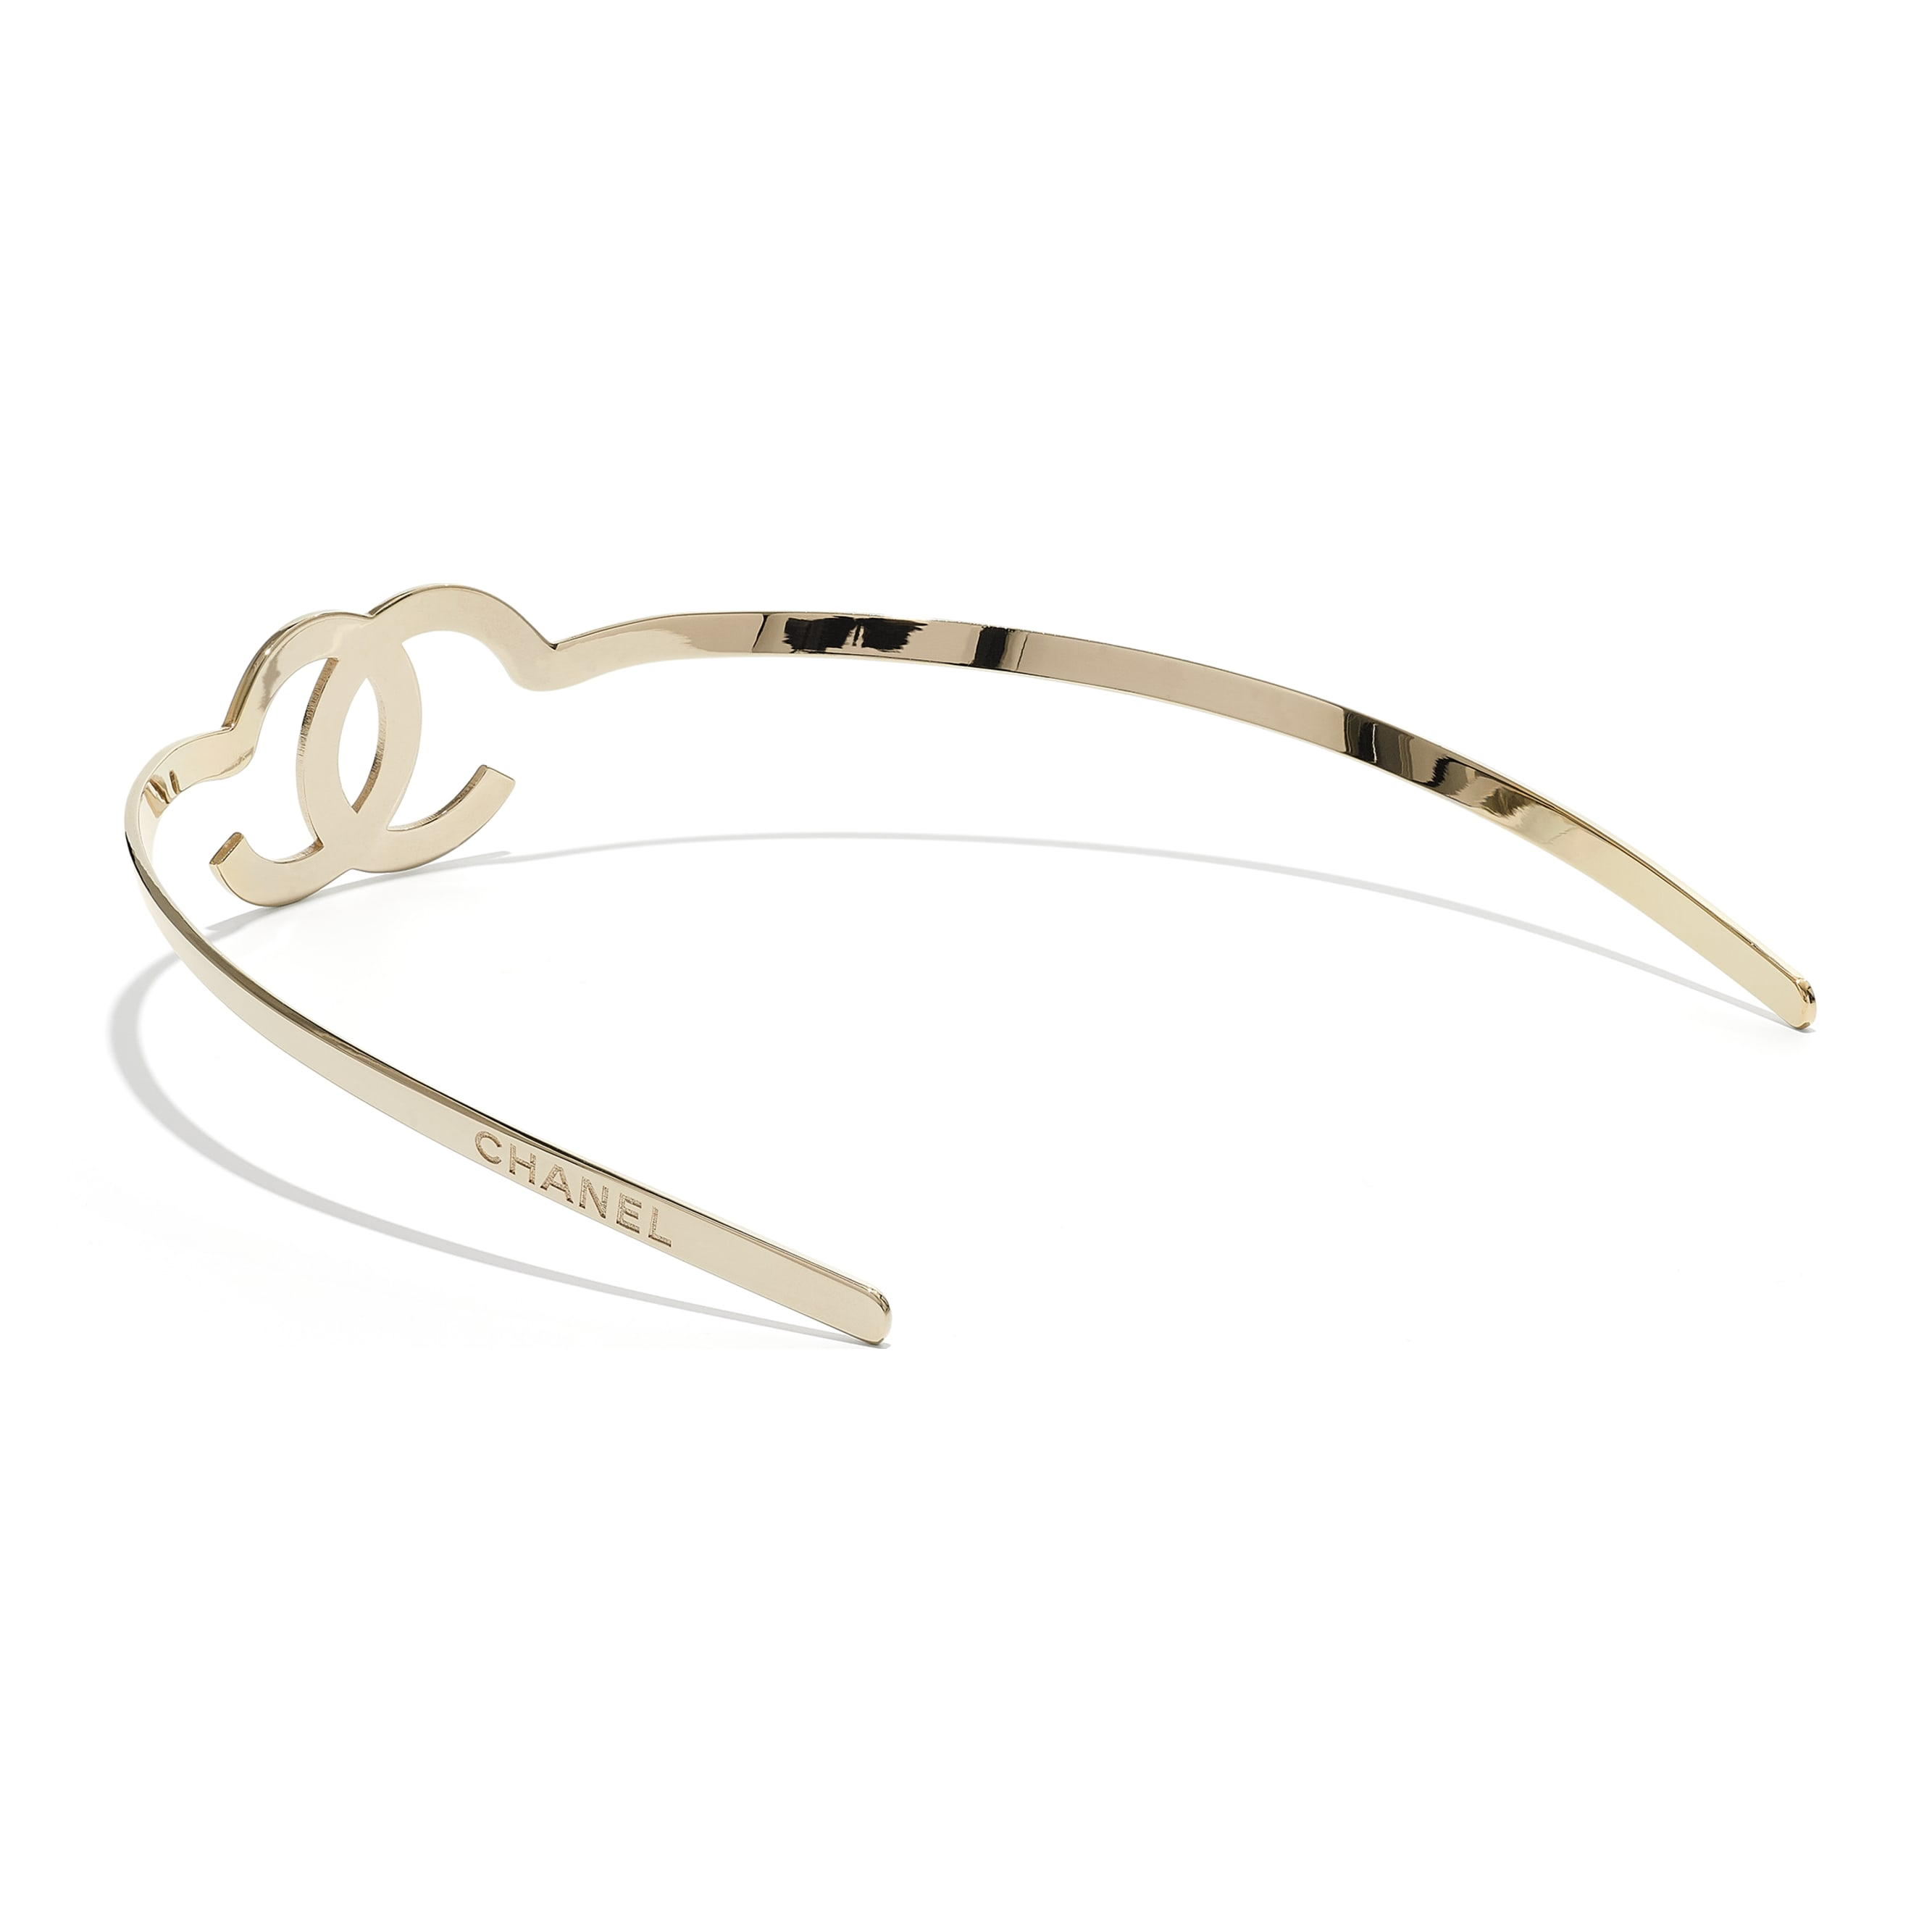 Headband - Gold - Metal - CHANEL - Alternative view - see standard sized version